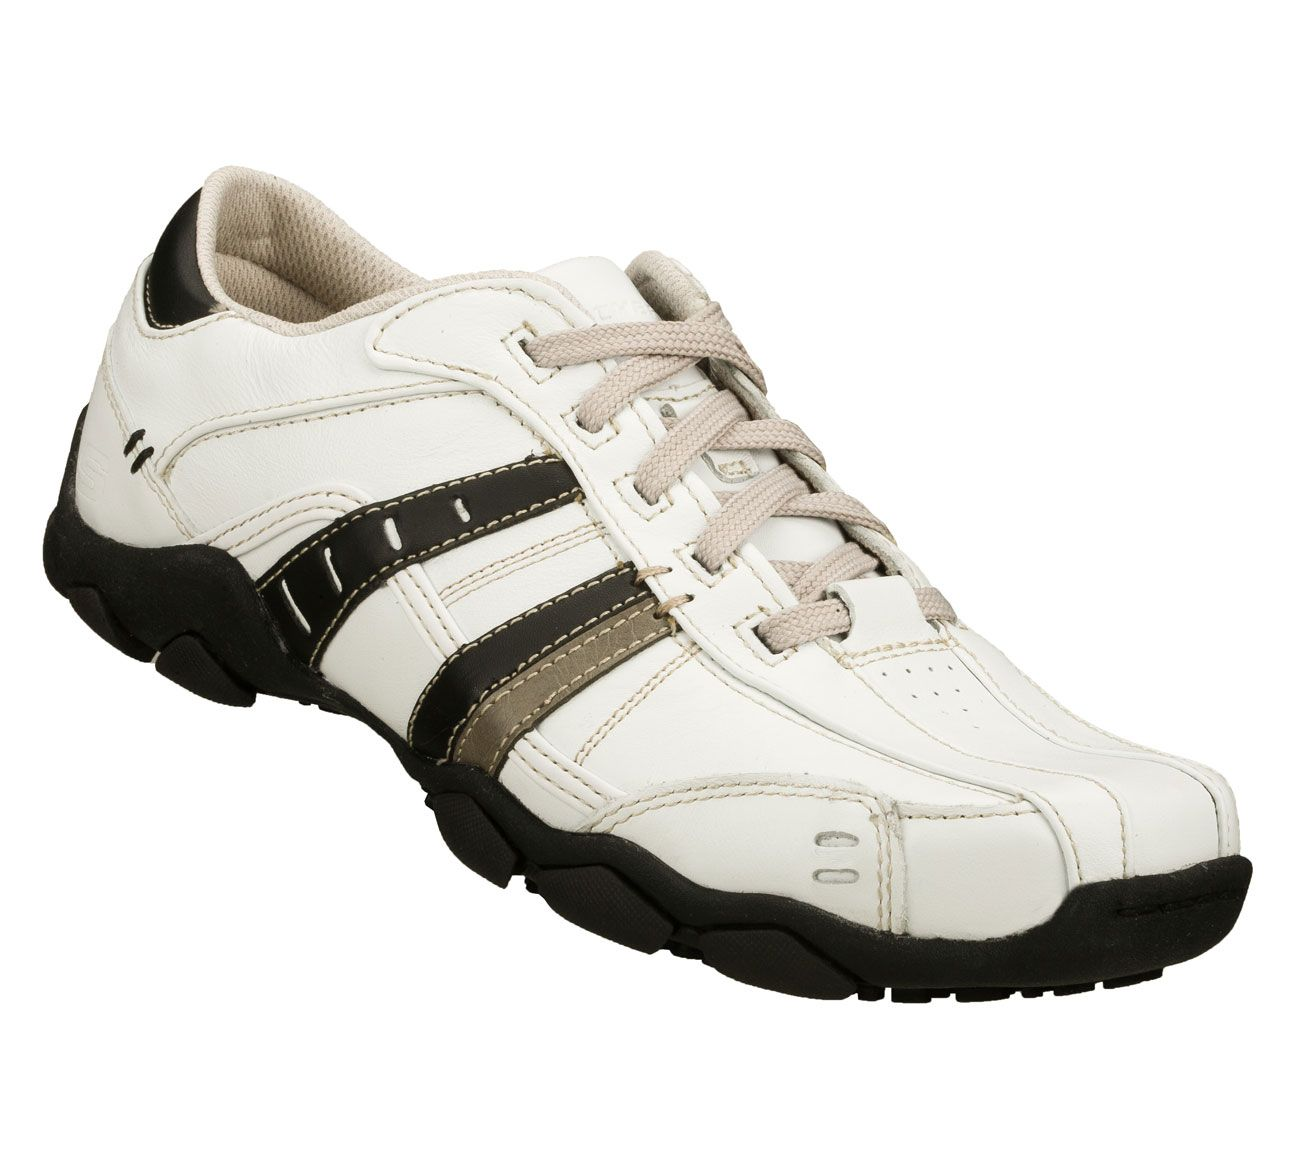 a792ed8f963 SKECHERS Men's Diameter - Vassell Lace-Up Shoes $68.00 | Accessories ...